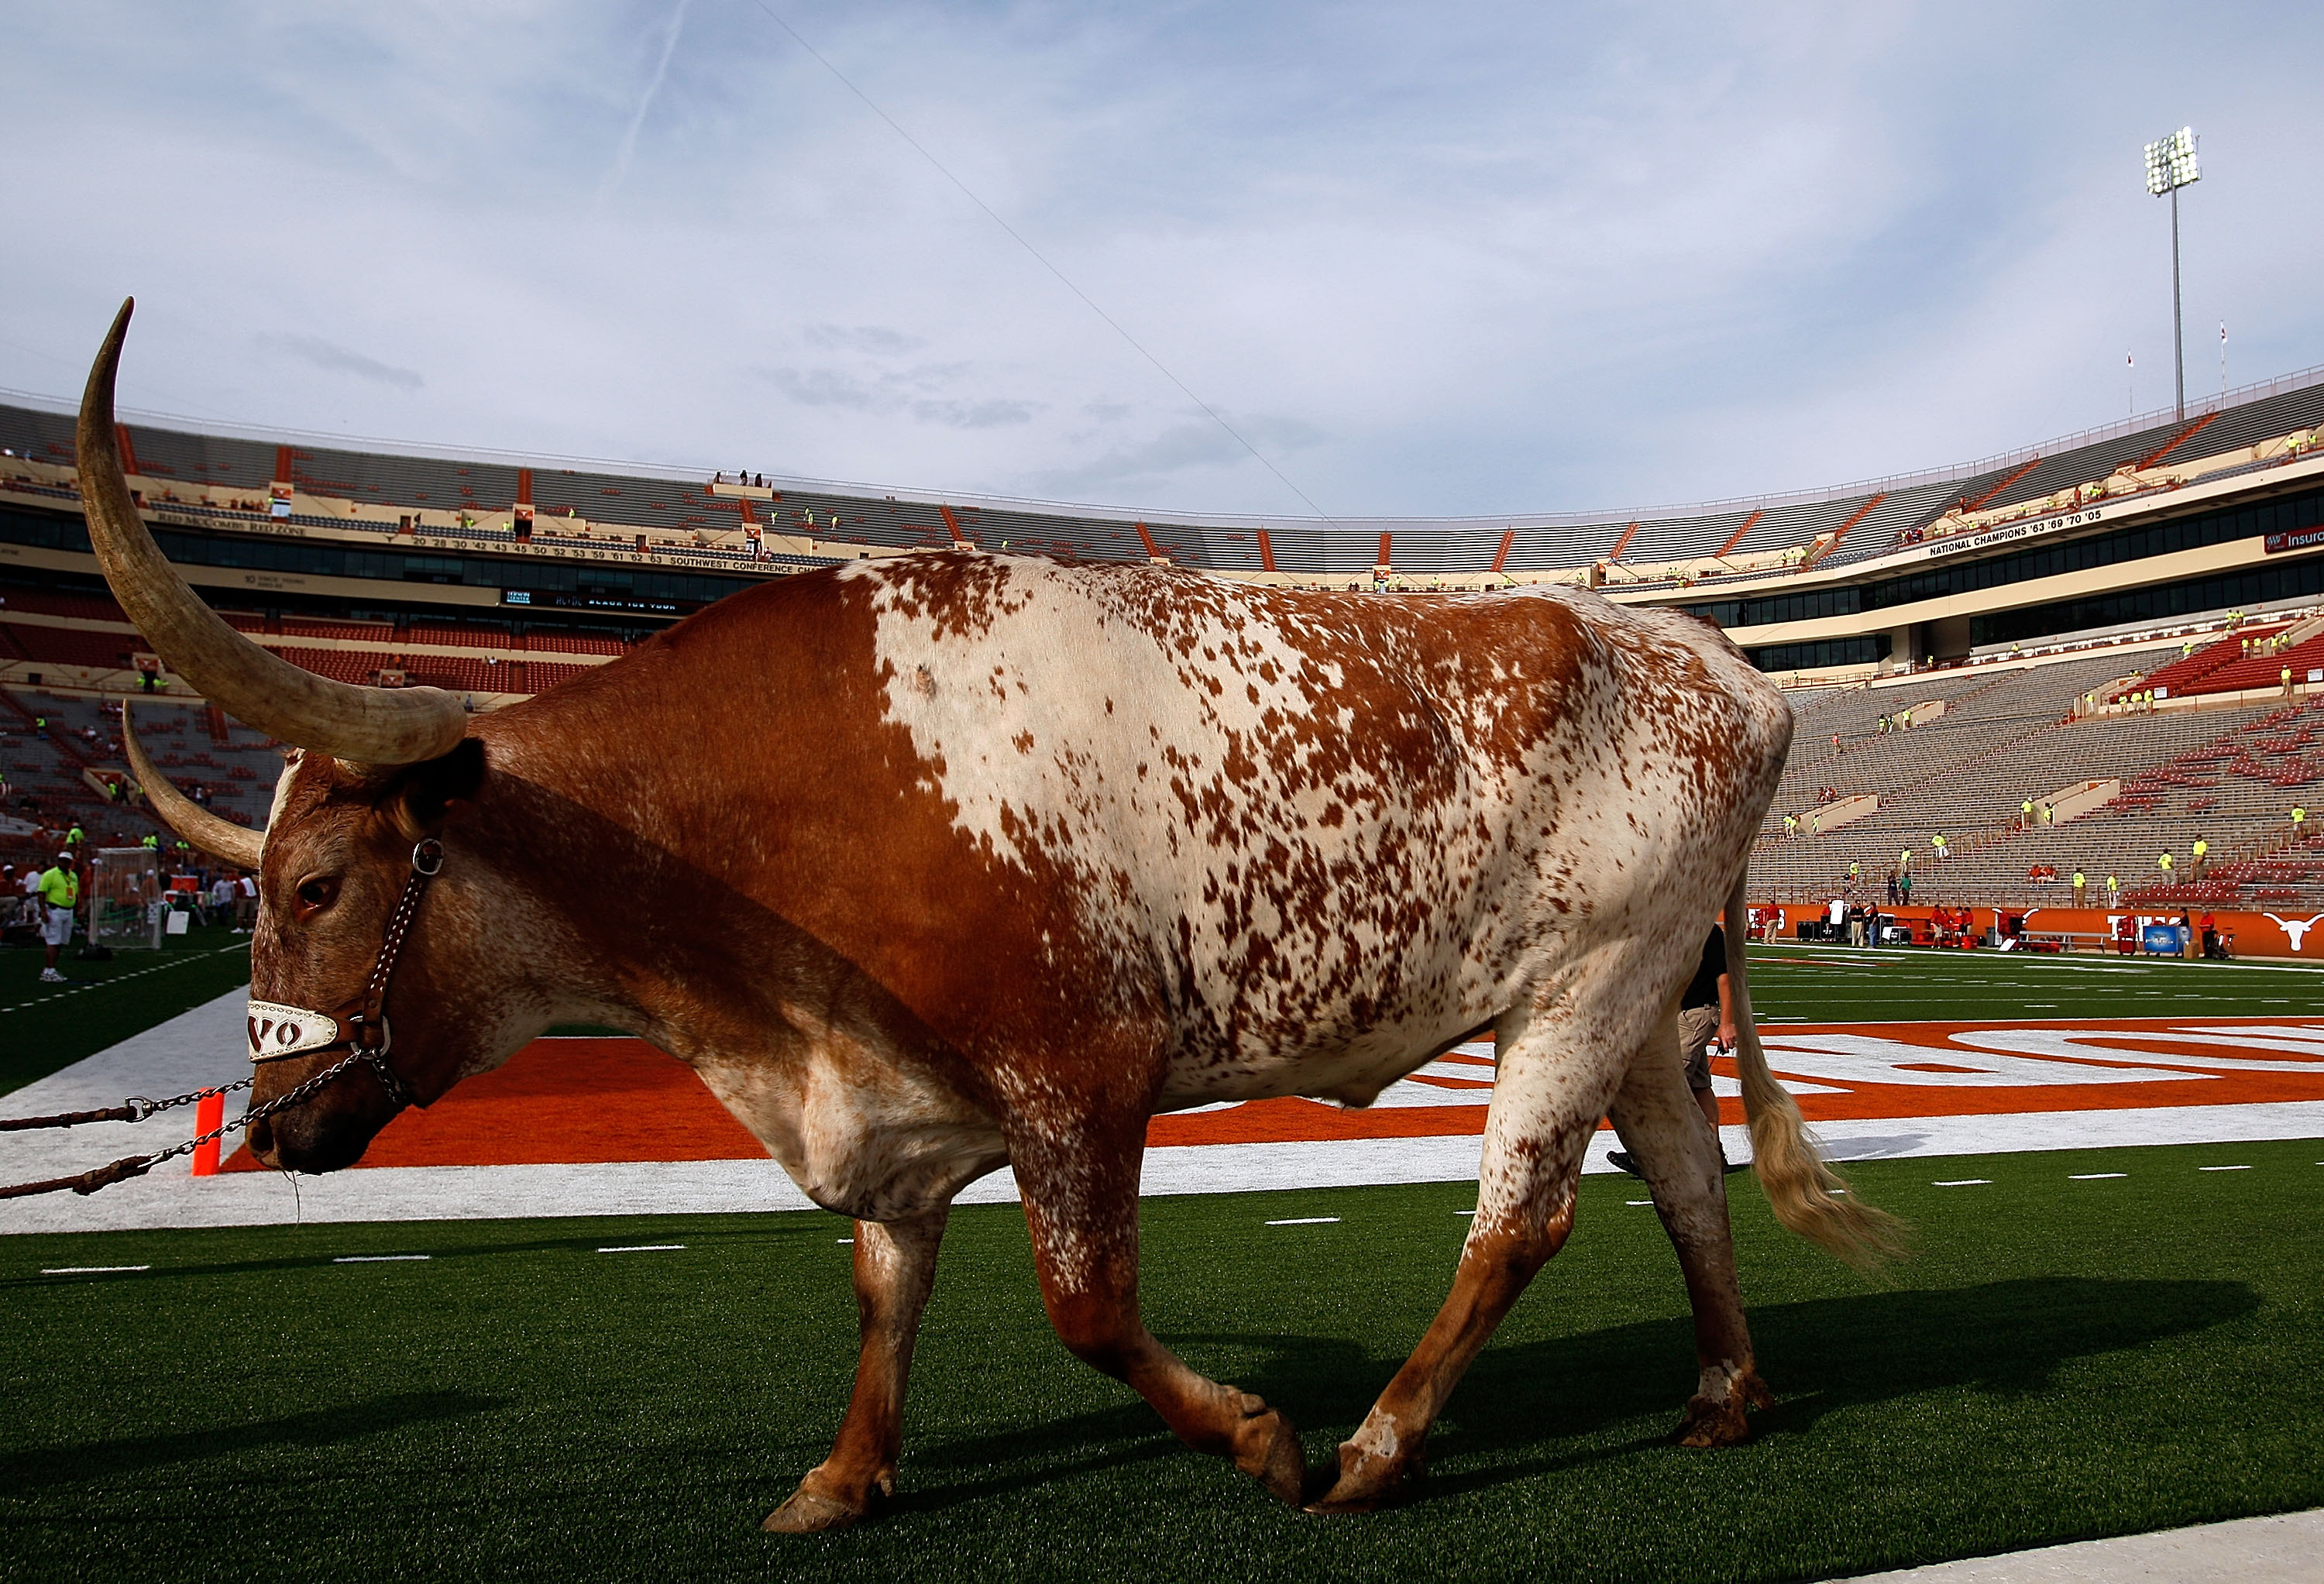 AUSTIN, TX - SEPTEMBER 19:  The Texas Longhorns mascot 'Bevo' walks on the field before a game against the Texas Tech Red Raiders at Darrell K Royal-Texas Memorial Stadium on September 19, 2009 in Austin, Texas.  (Photo by Ronald Martinez/Getty Images)